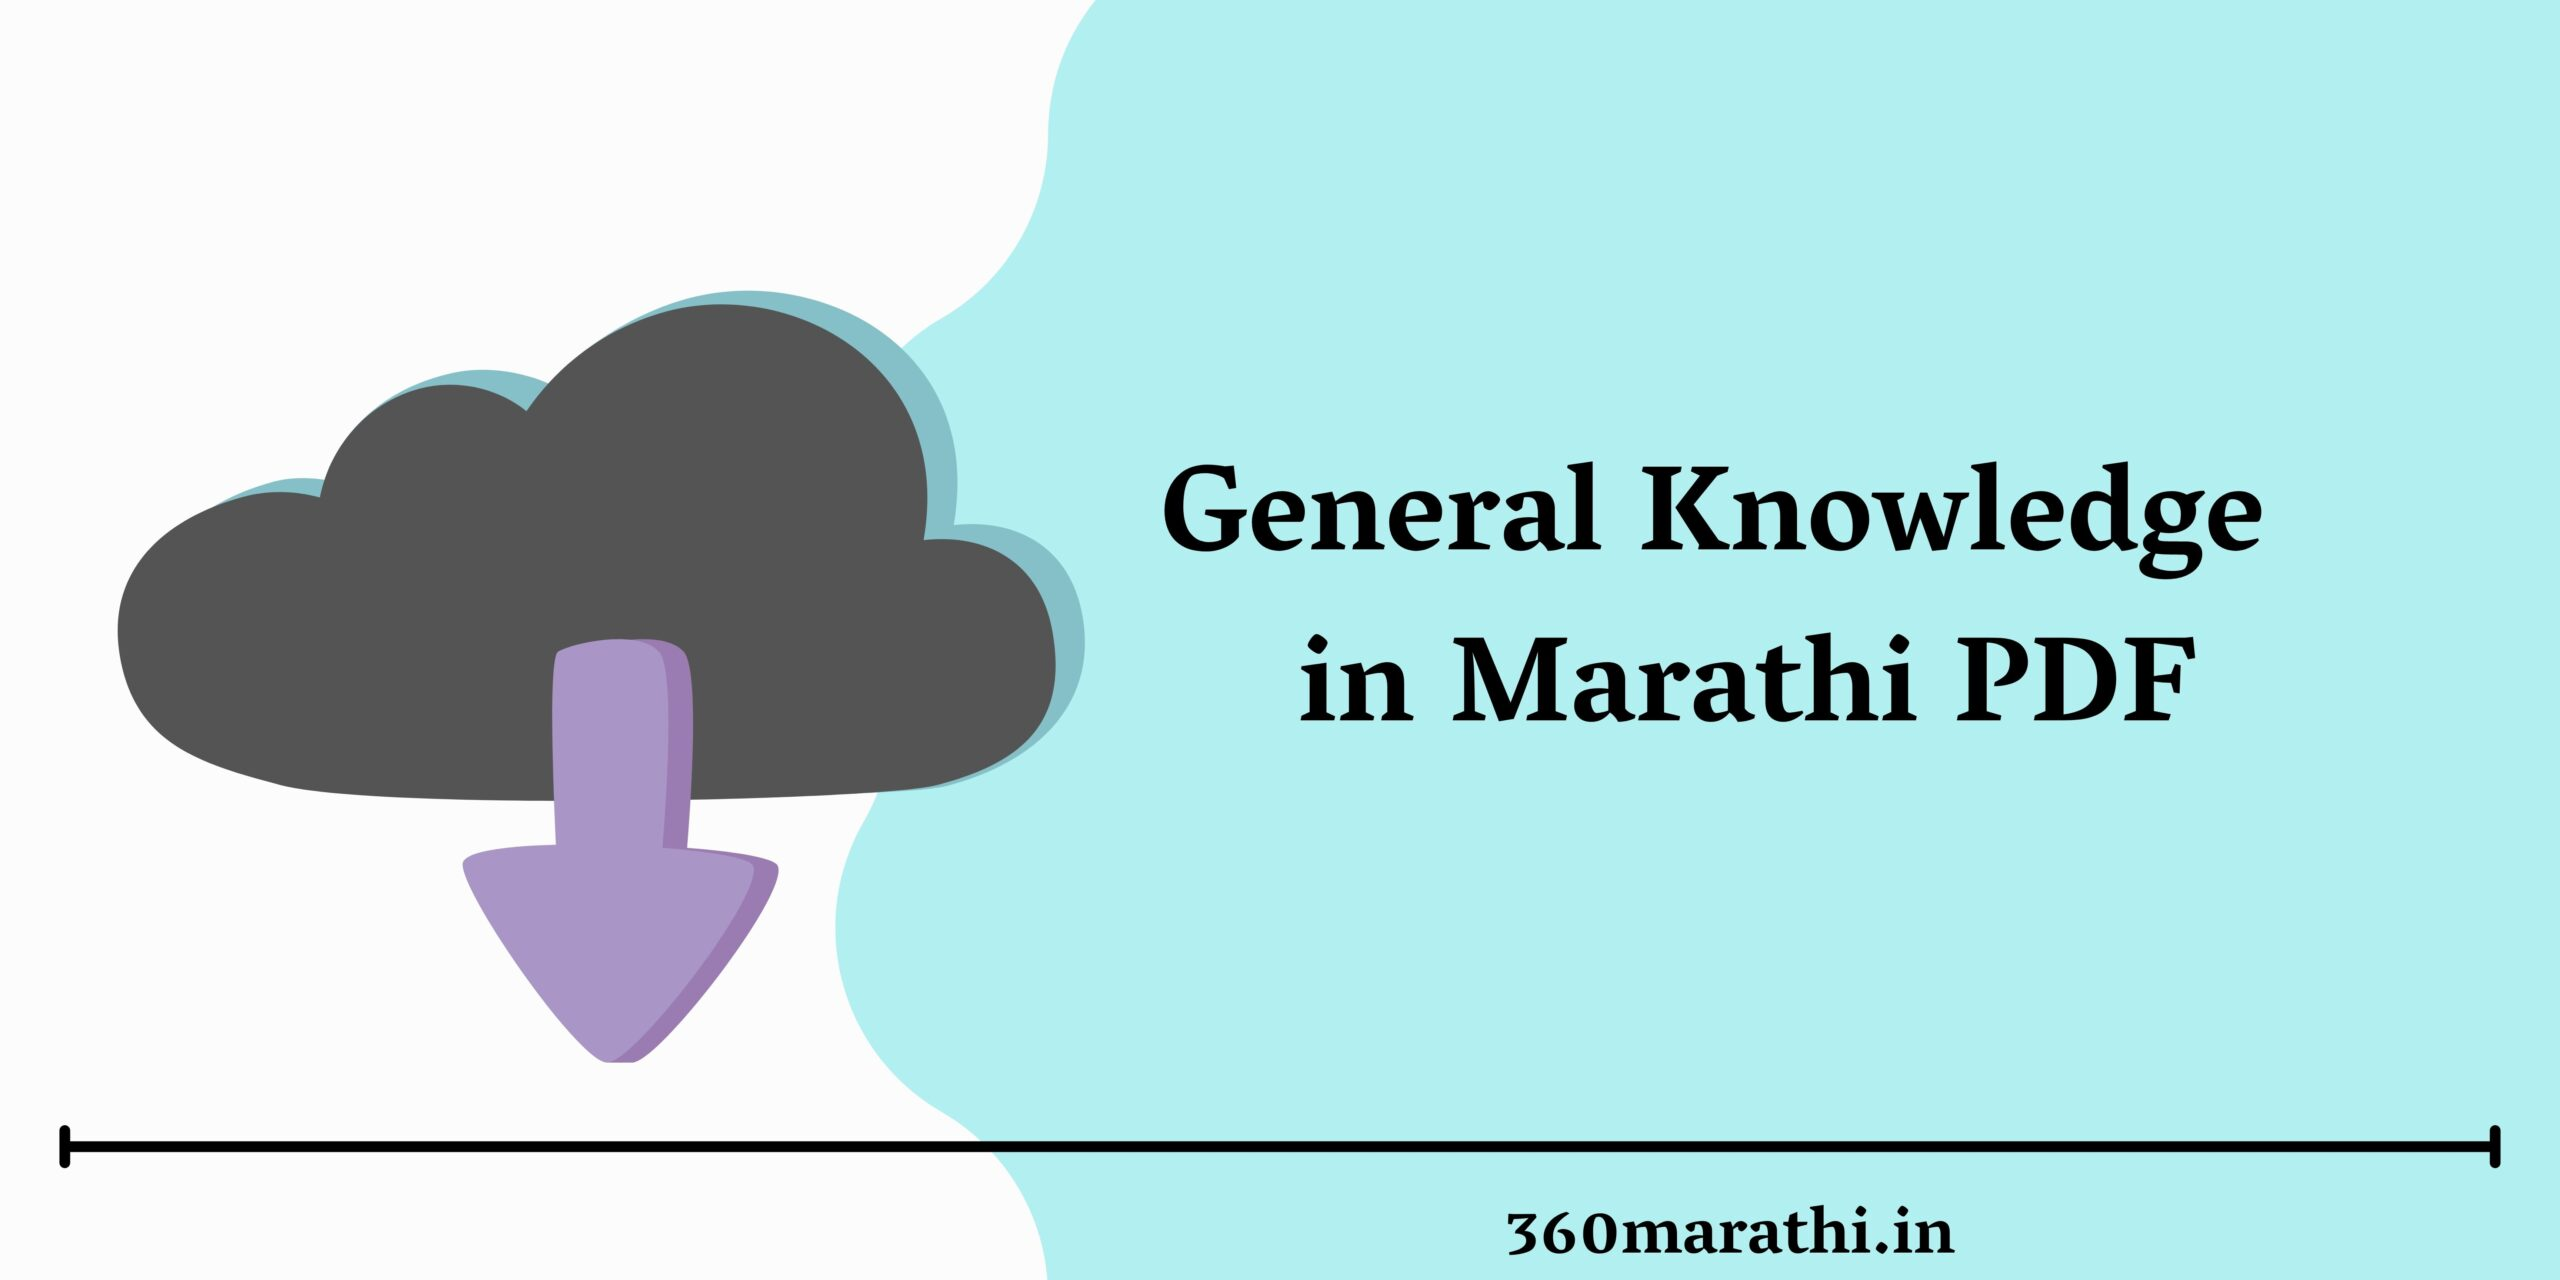 [ Questions & Answers ] General Knowledge in Marathi PDF